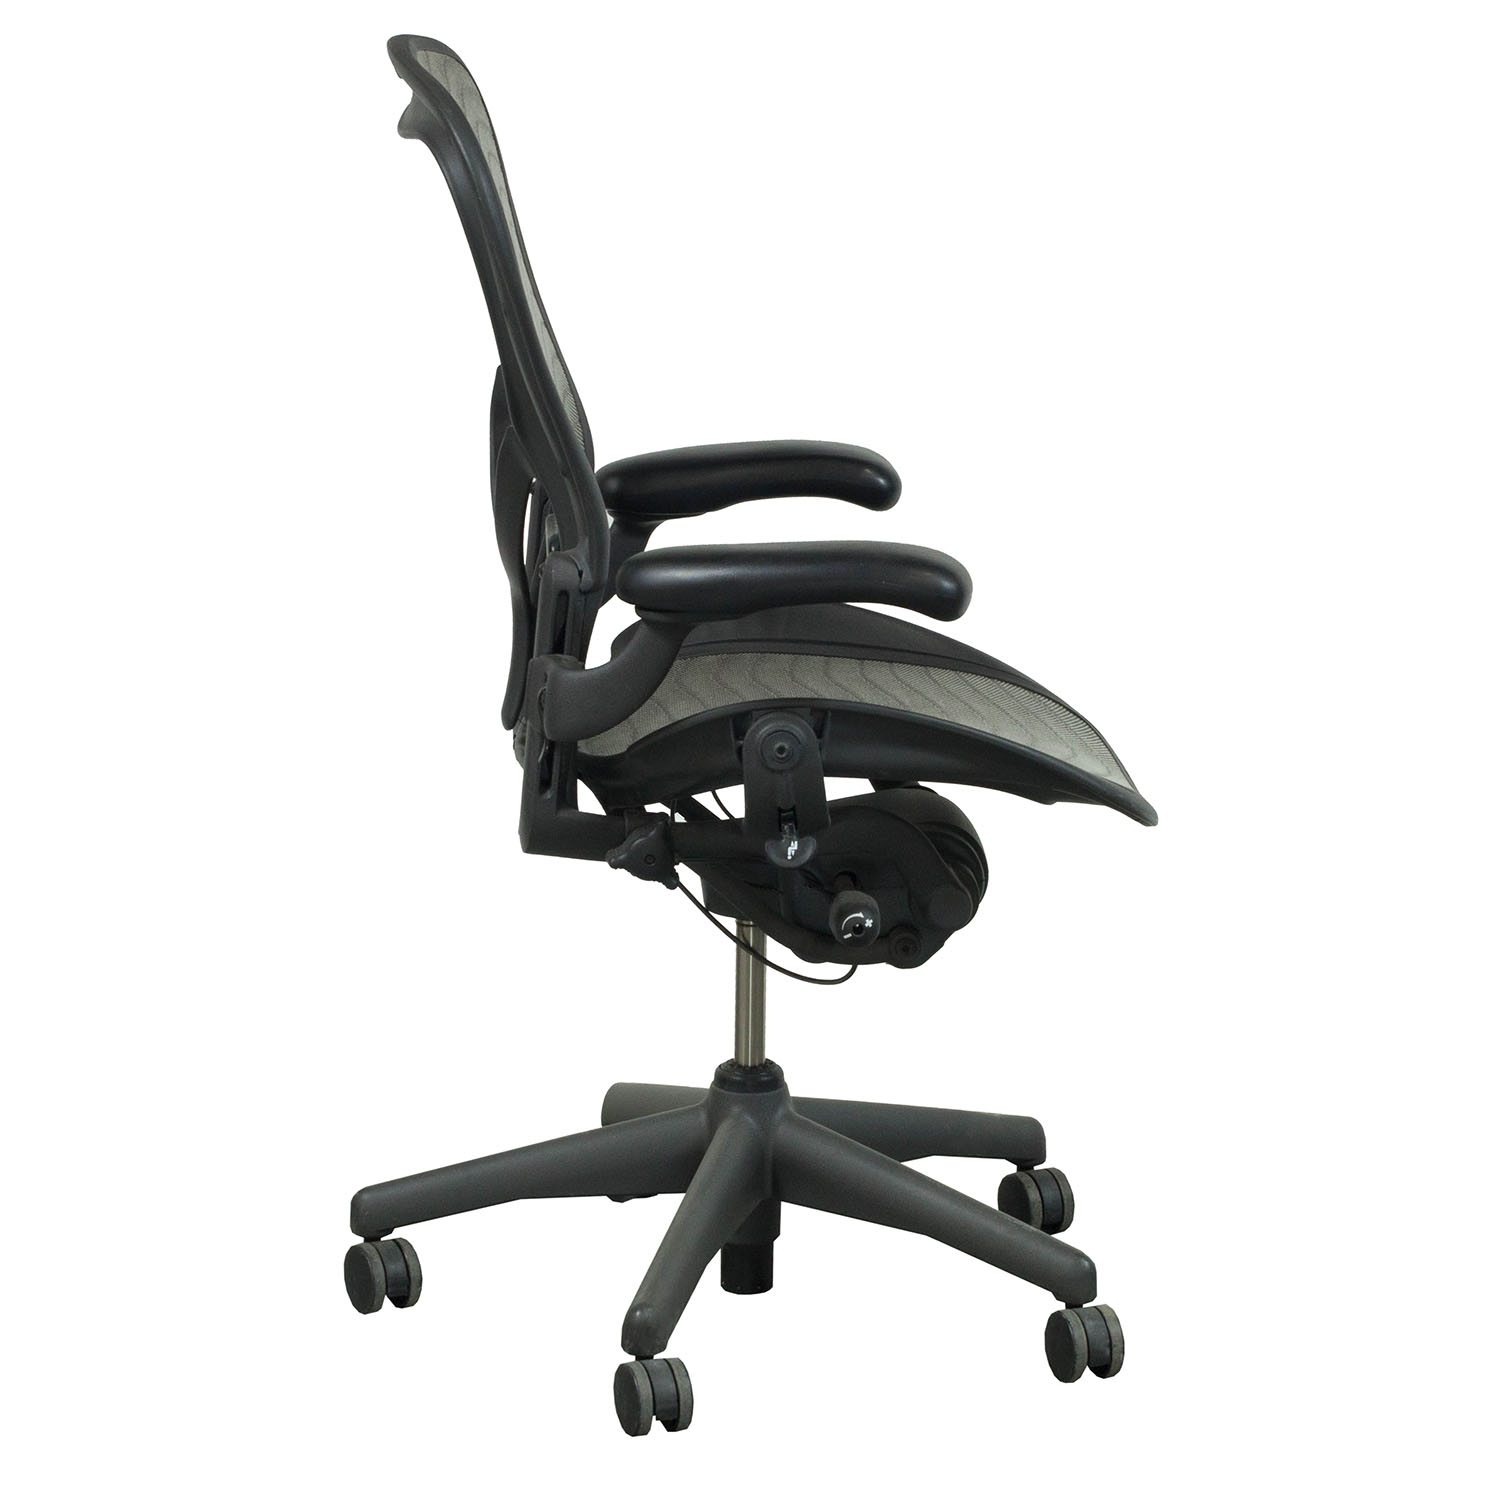 posturefit chair swivel explosion herman miller aeron used size b posture fit task